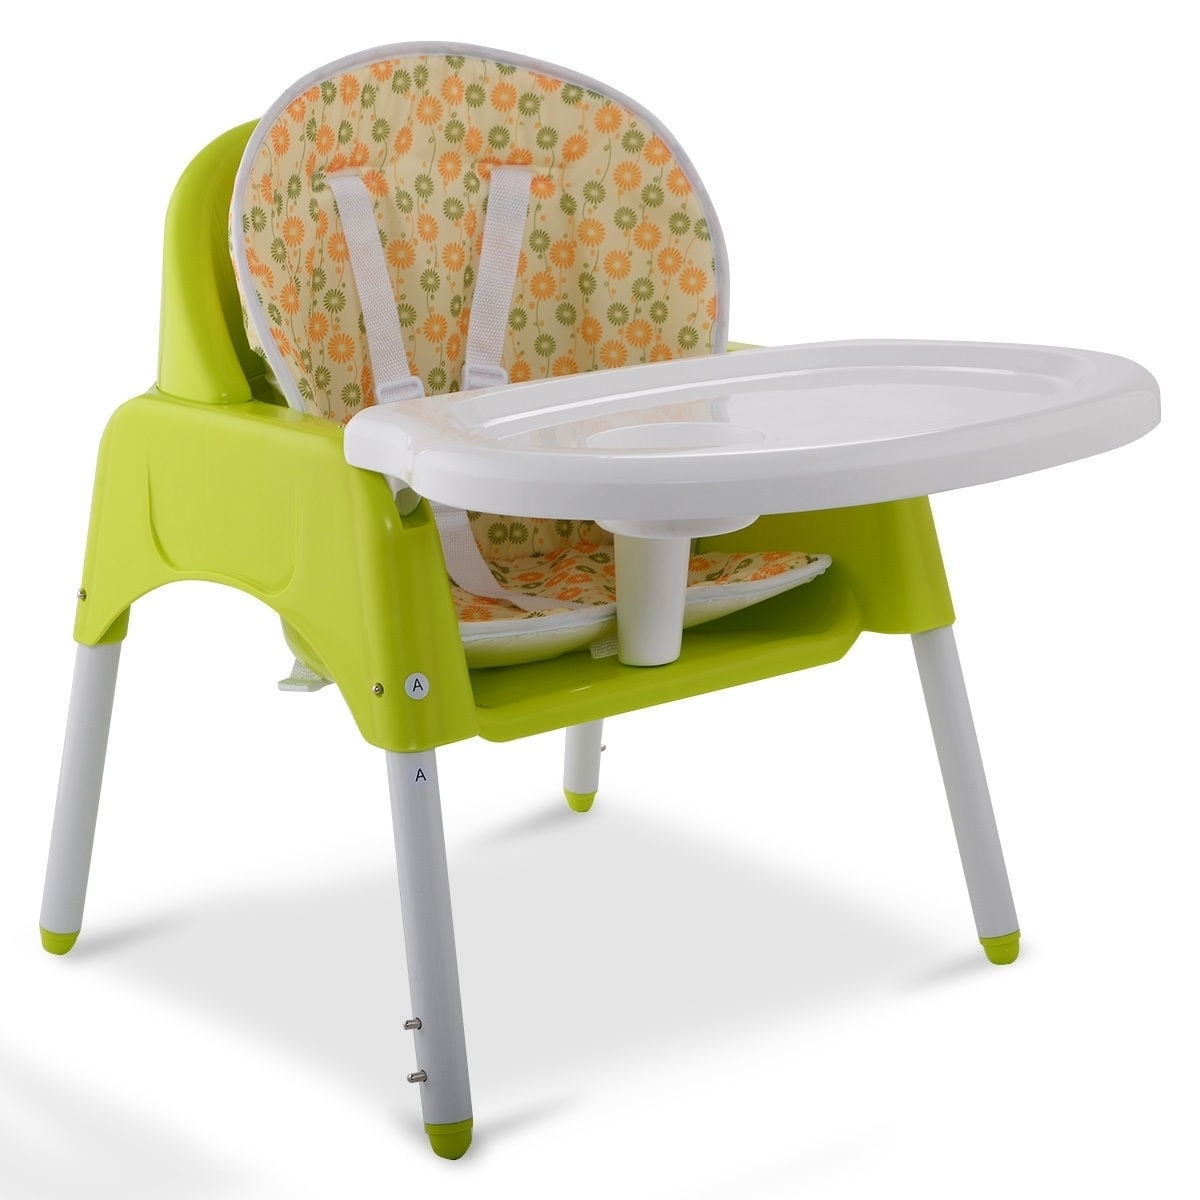 3 in 1 Convertible Baby High Chair Feeding Seat thumbnail